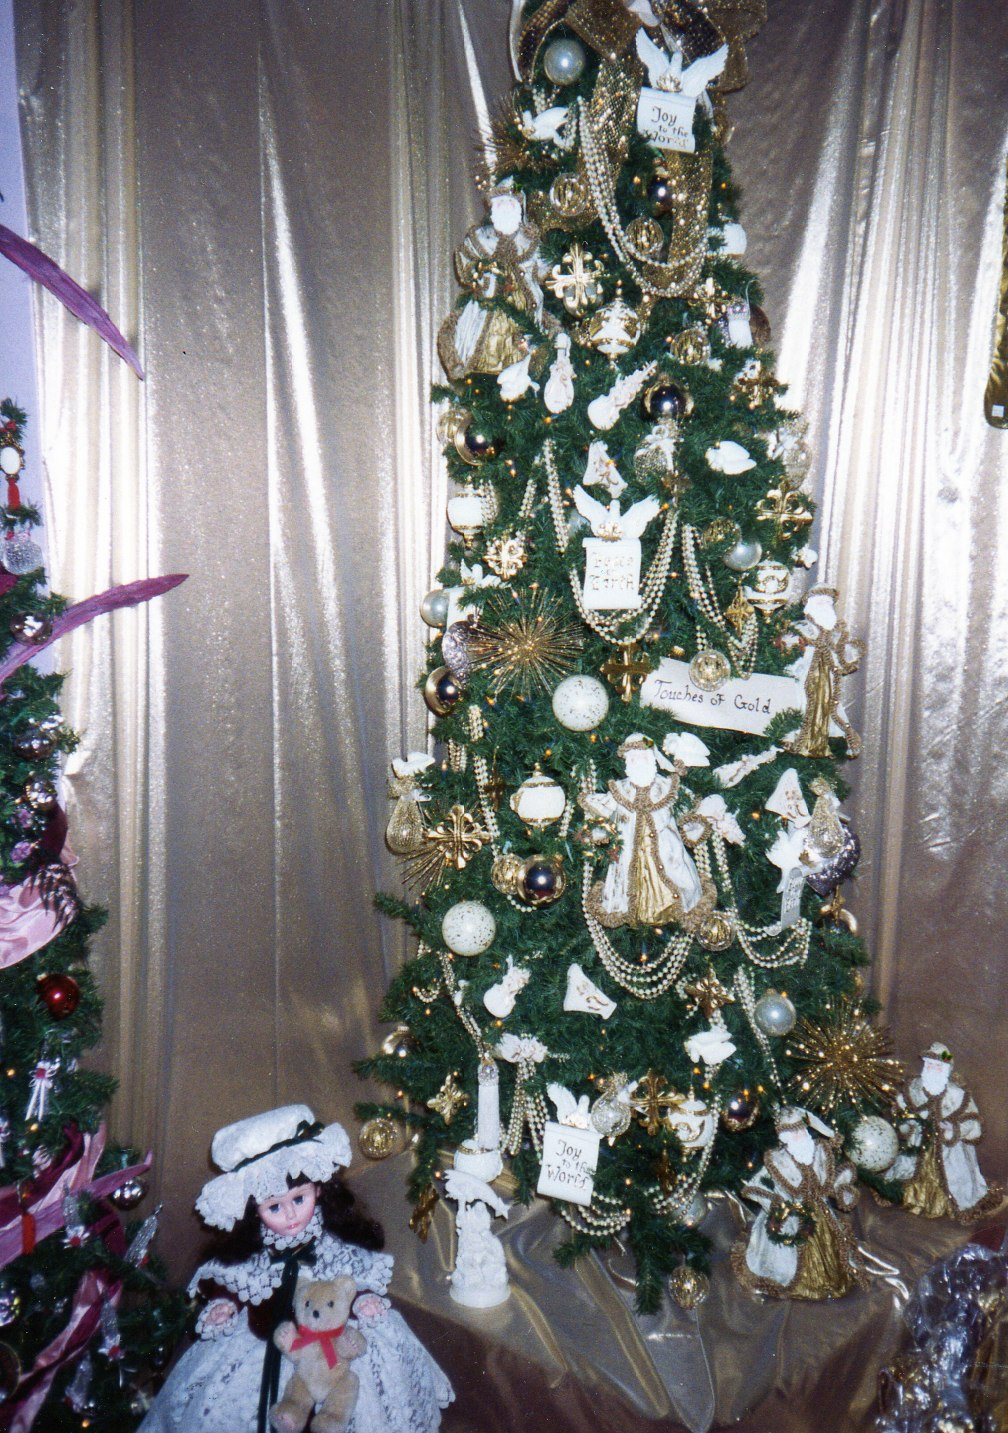 urbanchristmas decorating ideas: What goes under the ...